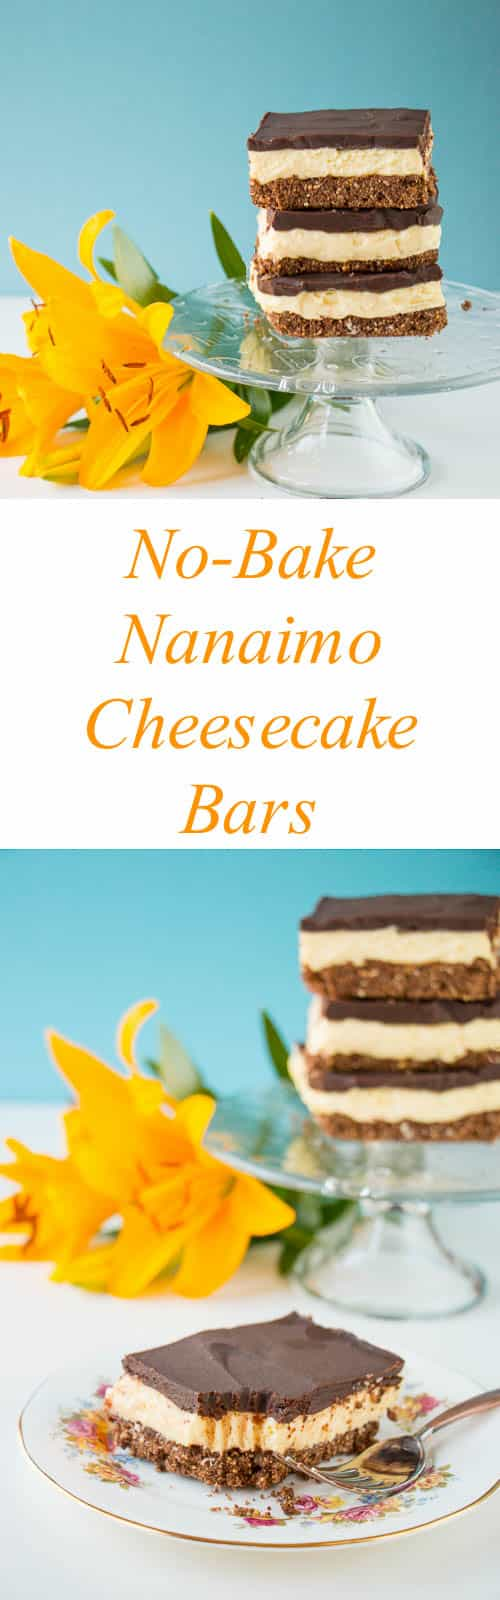 A Creamy Layer Of Vanilla Custard Flavored Cheesecake Sandwiched Between A Chocolatey Coconut Cookie Crumb Base